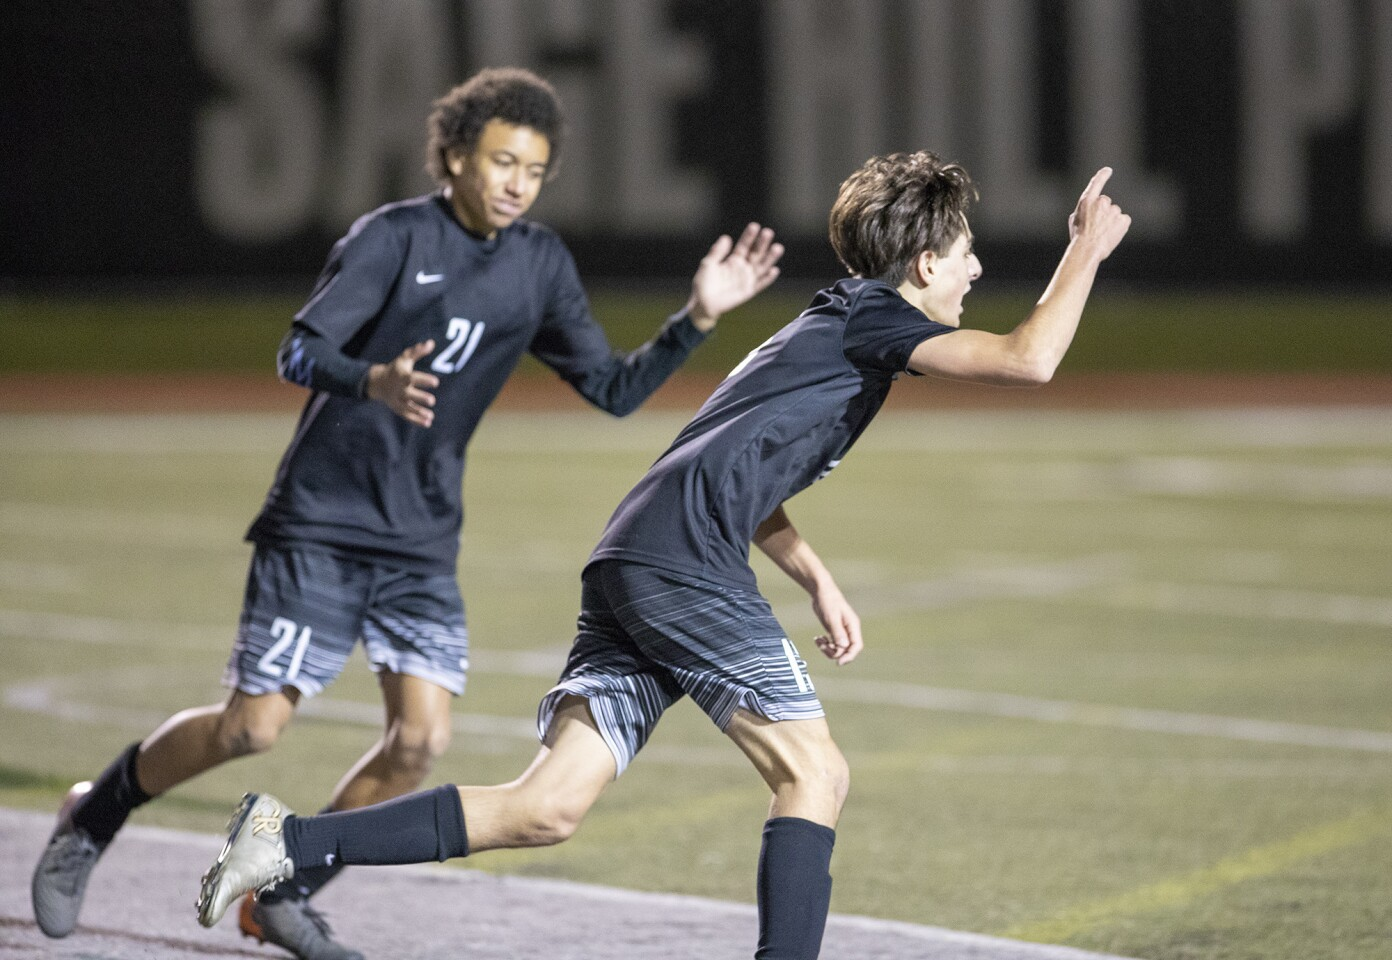 Photo Gallery: Sage Hill vs. Long Beach St. Anthony in boys' soccer